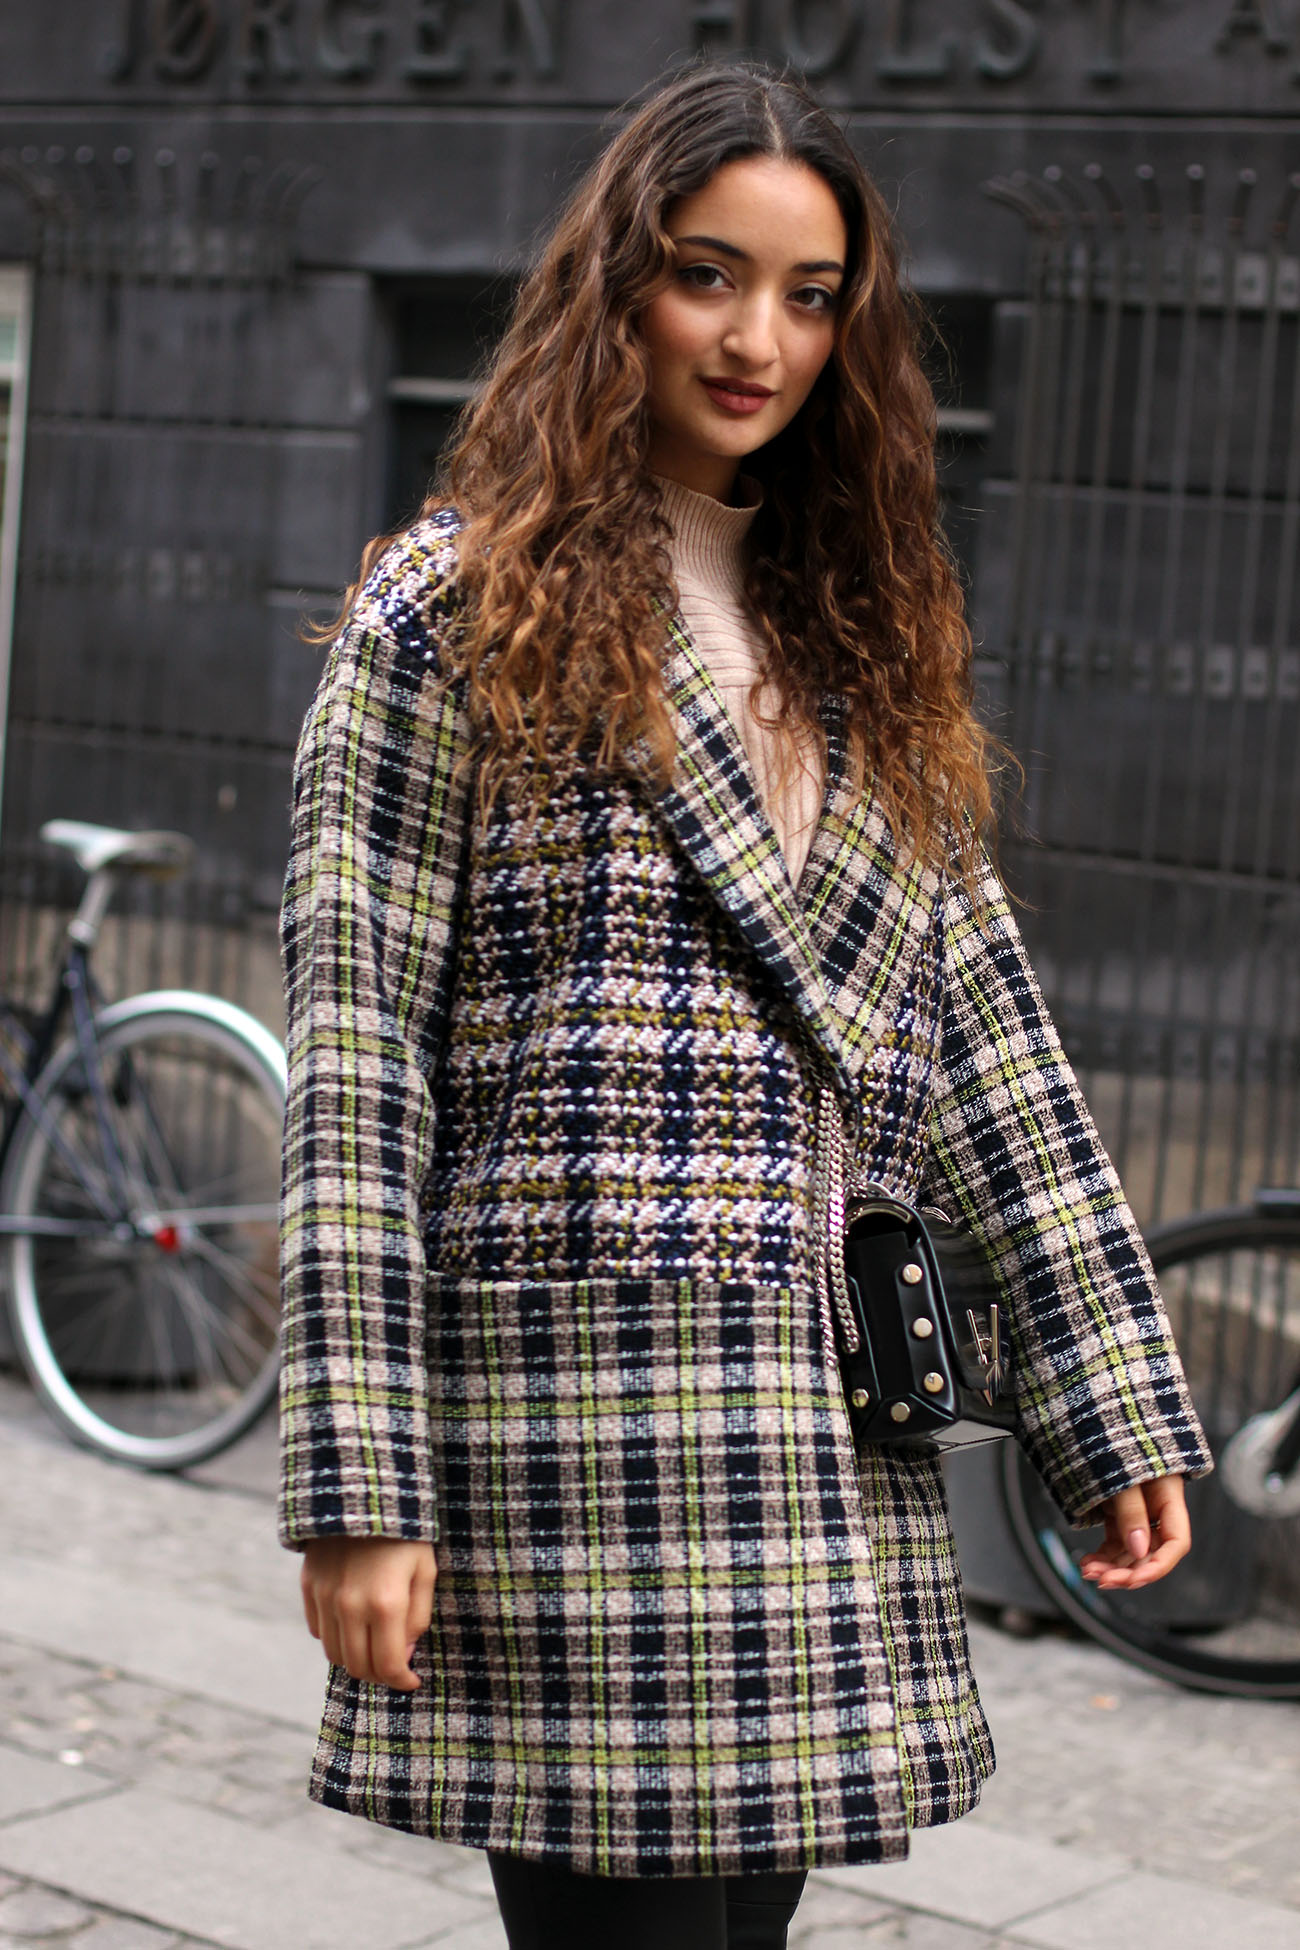 Checked Coat for Autumn 2017